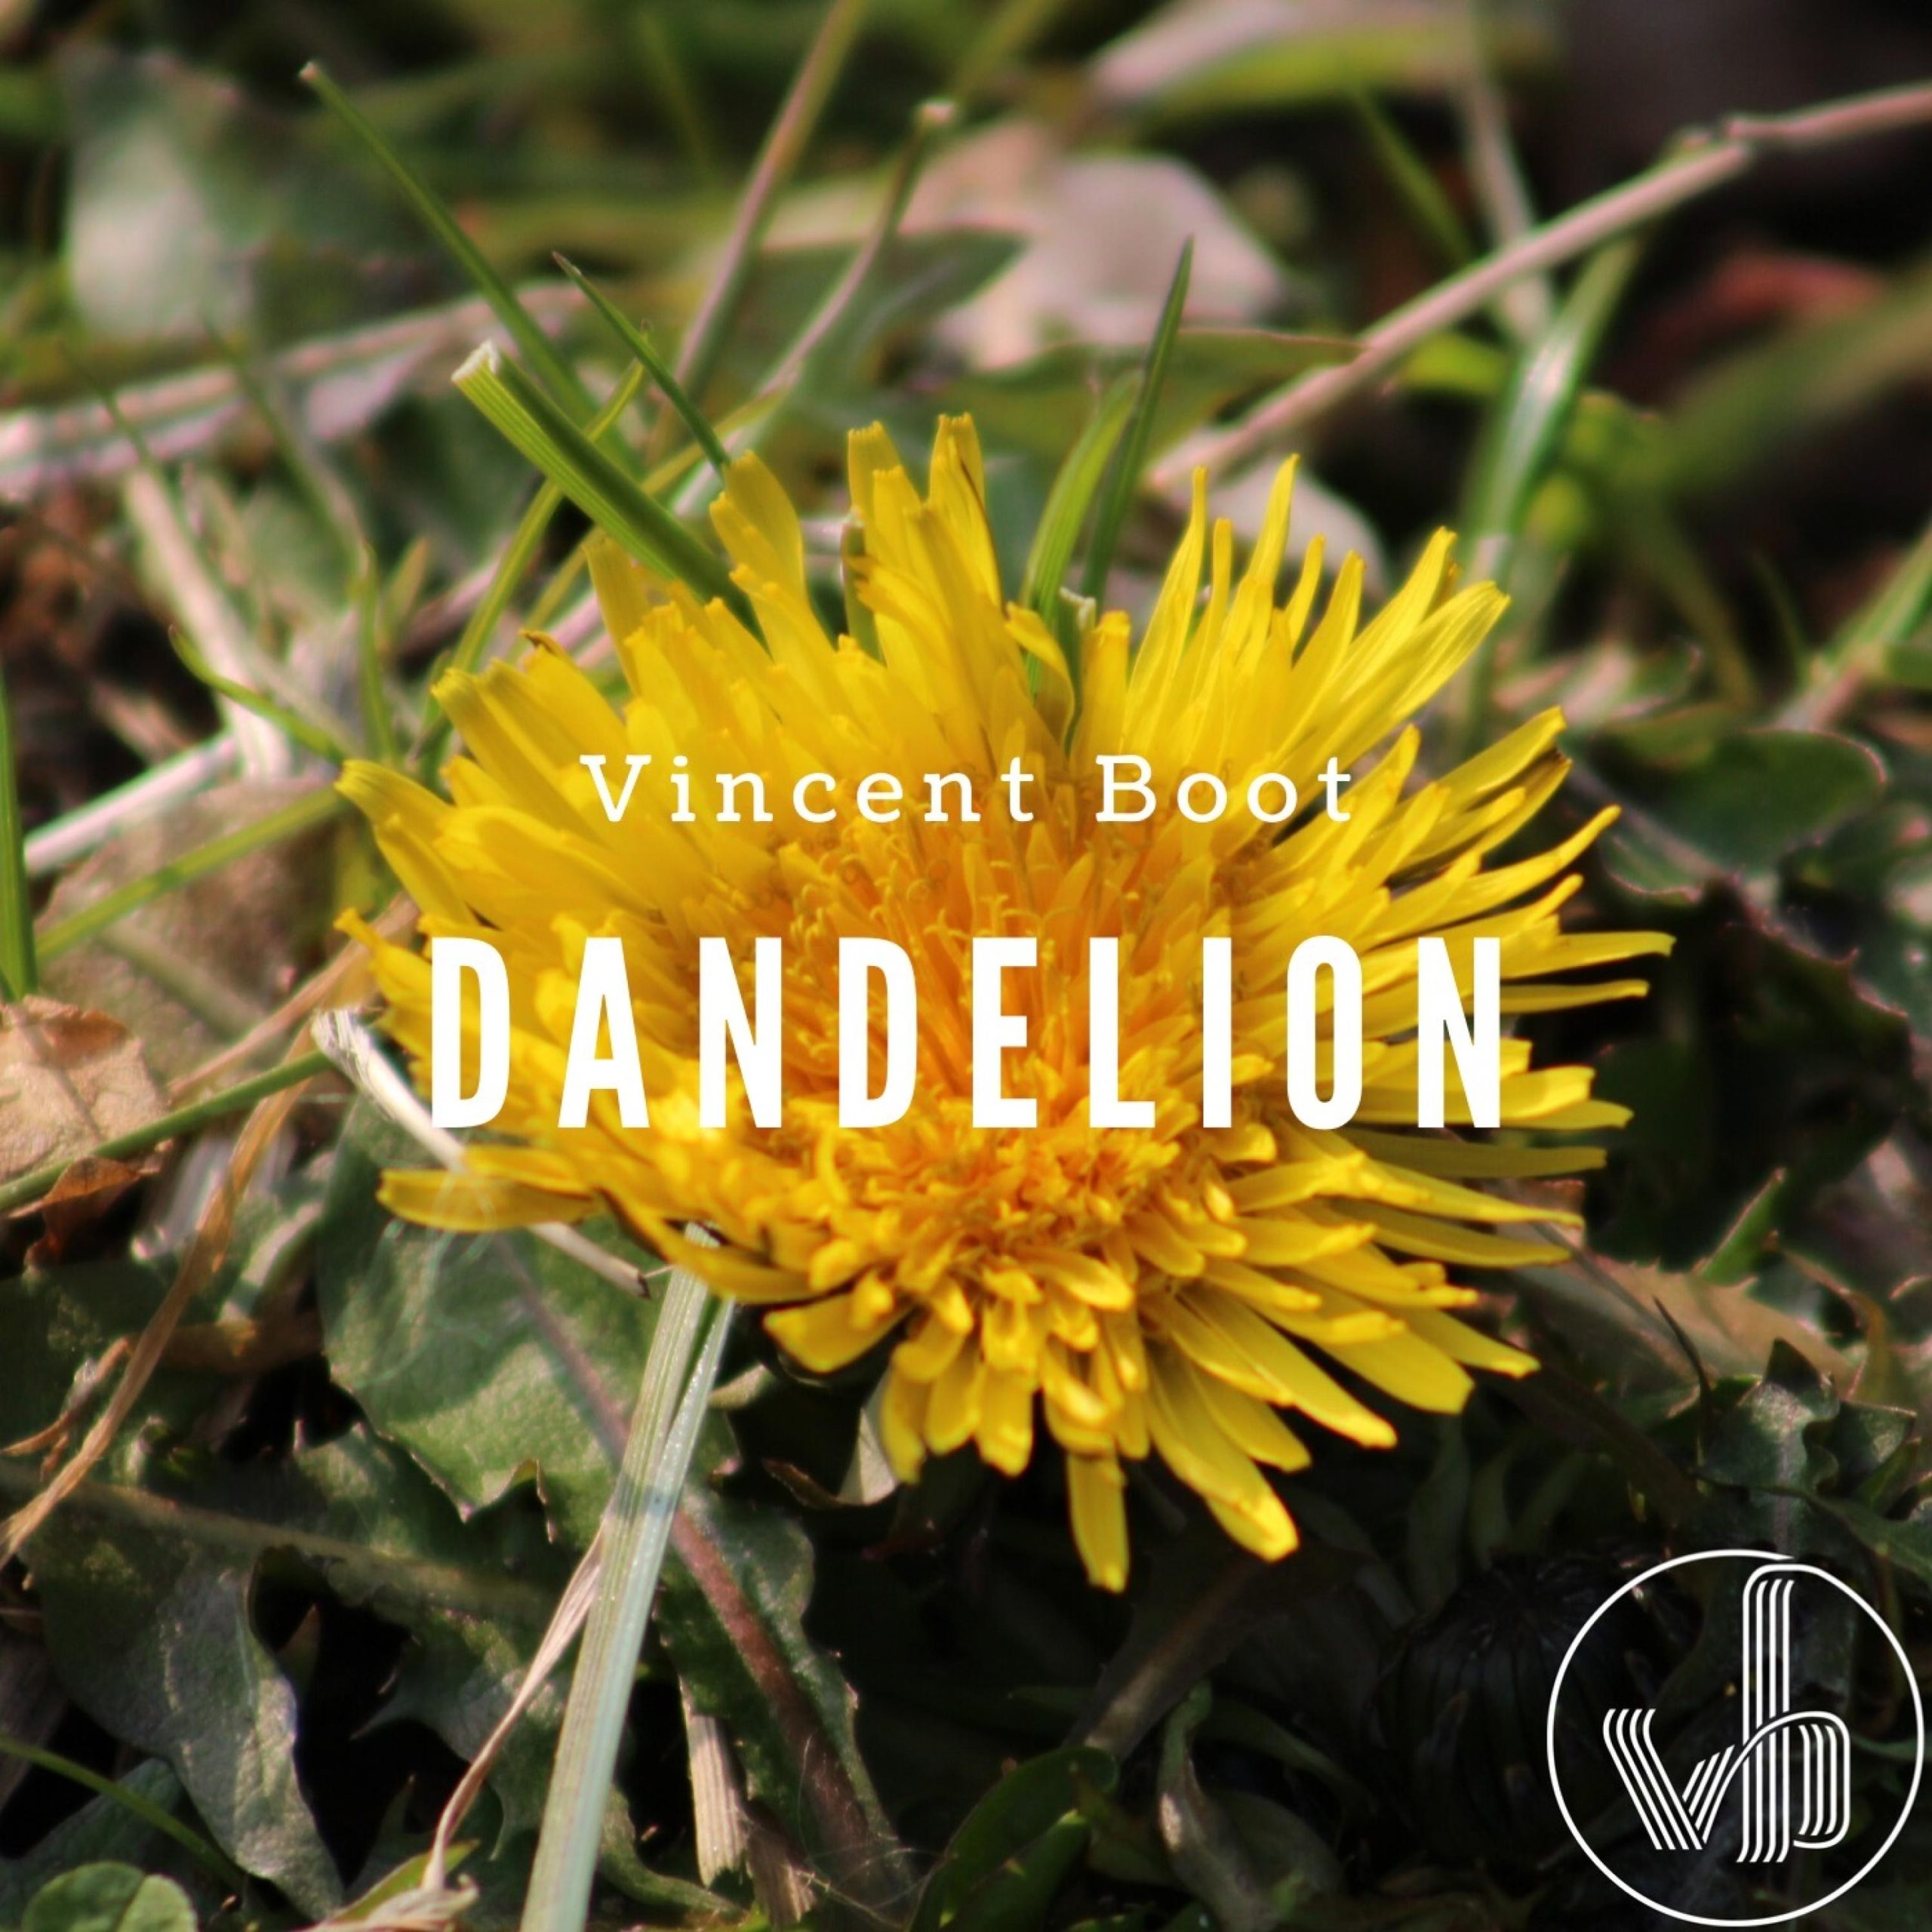 Vincent Boot - Dandelion